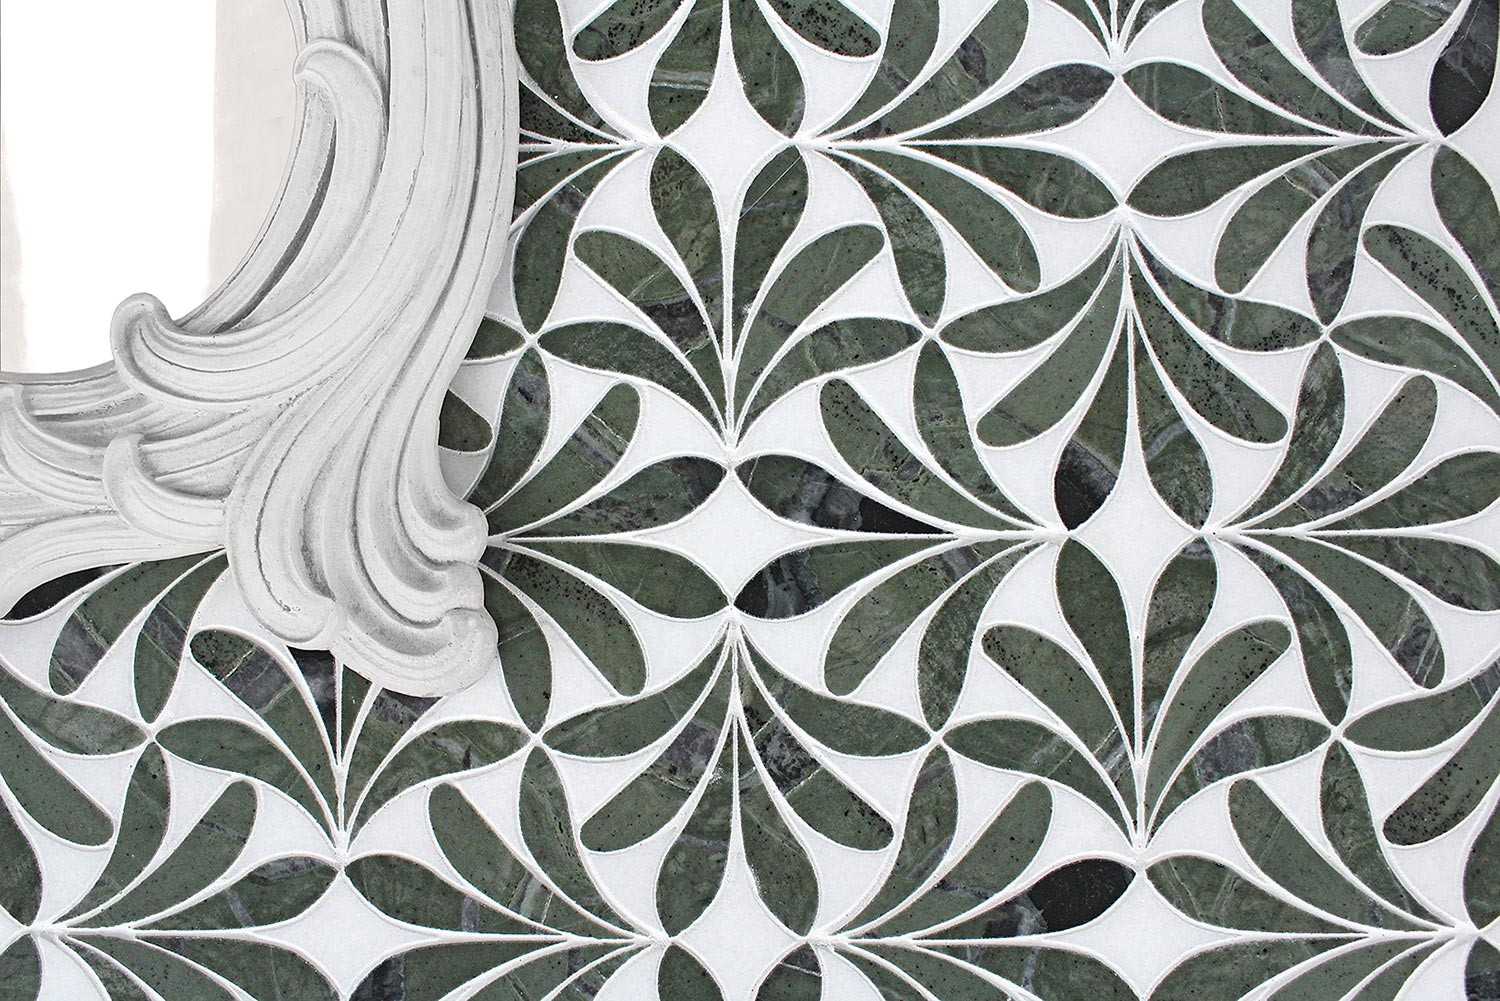 About Robert F. Henry Tile